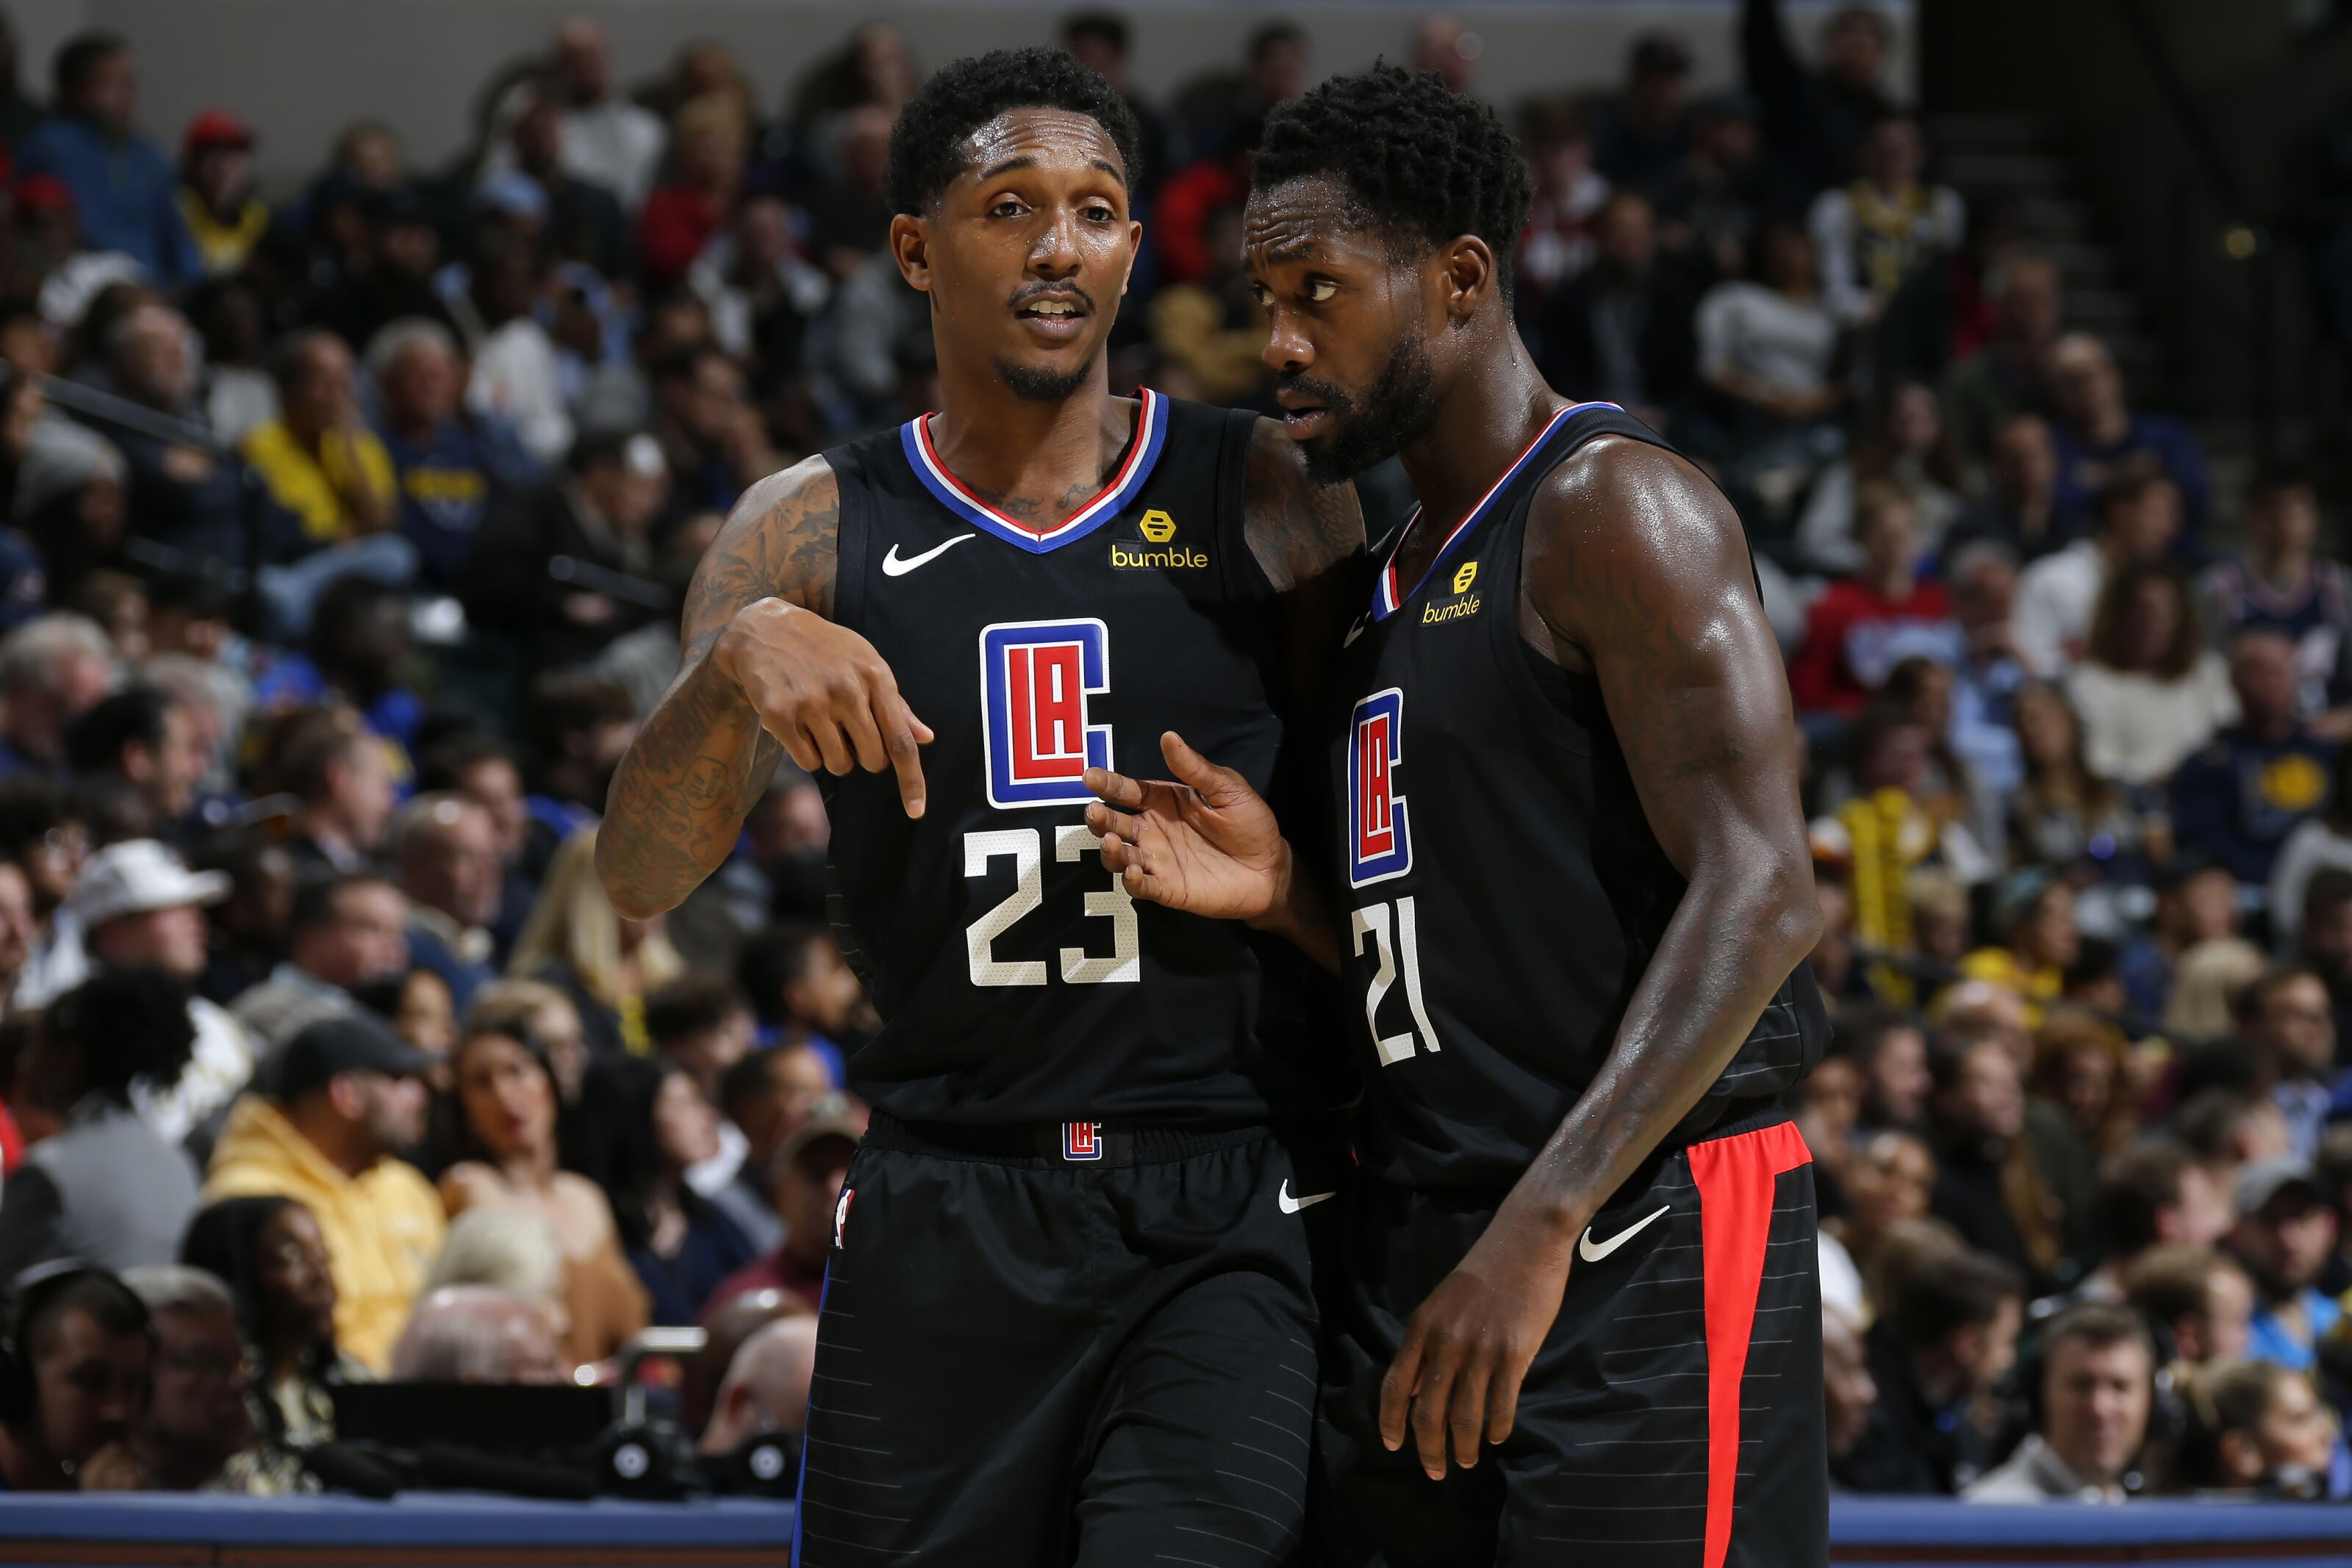 LA Clippers could have guard troubles without Pat and Lou